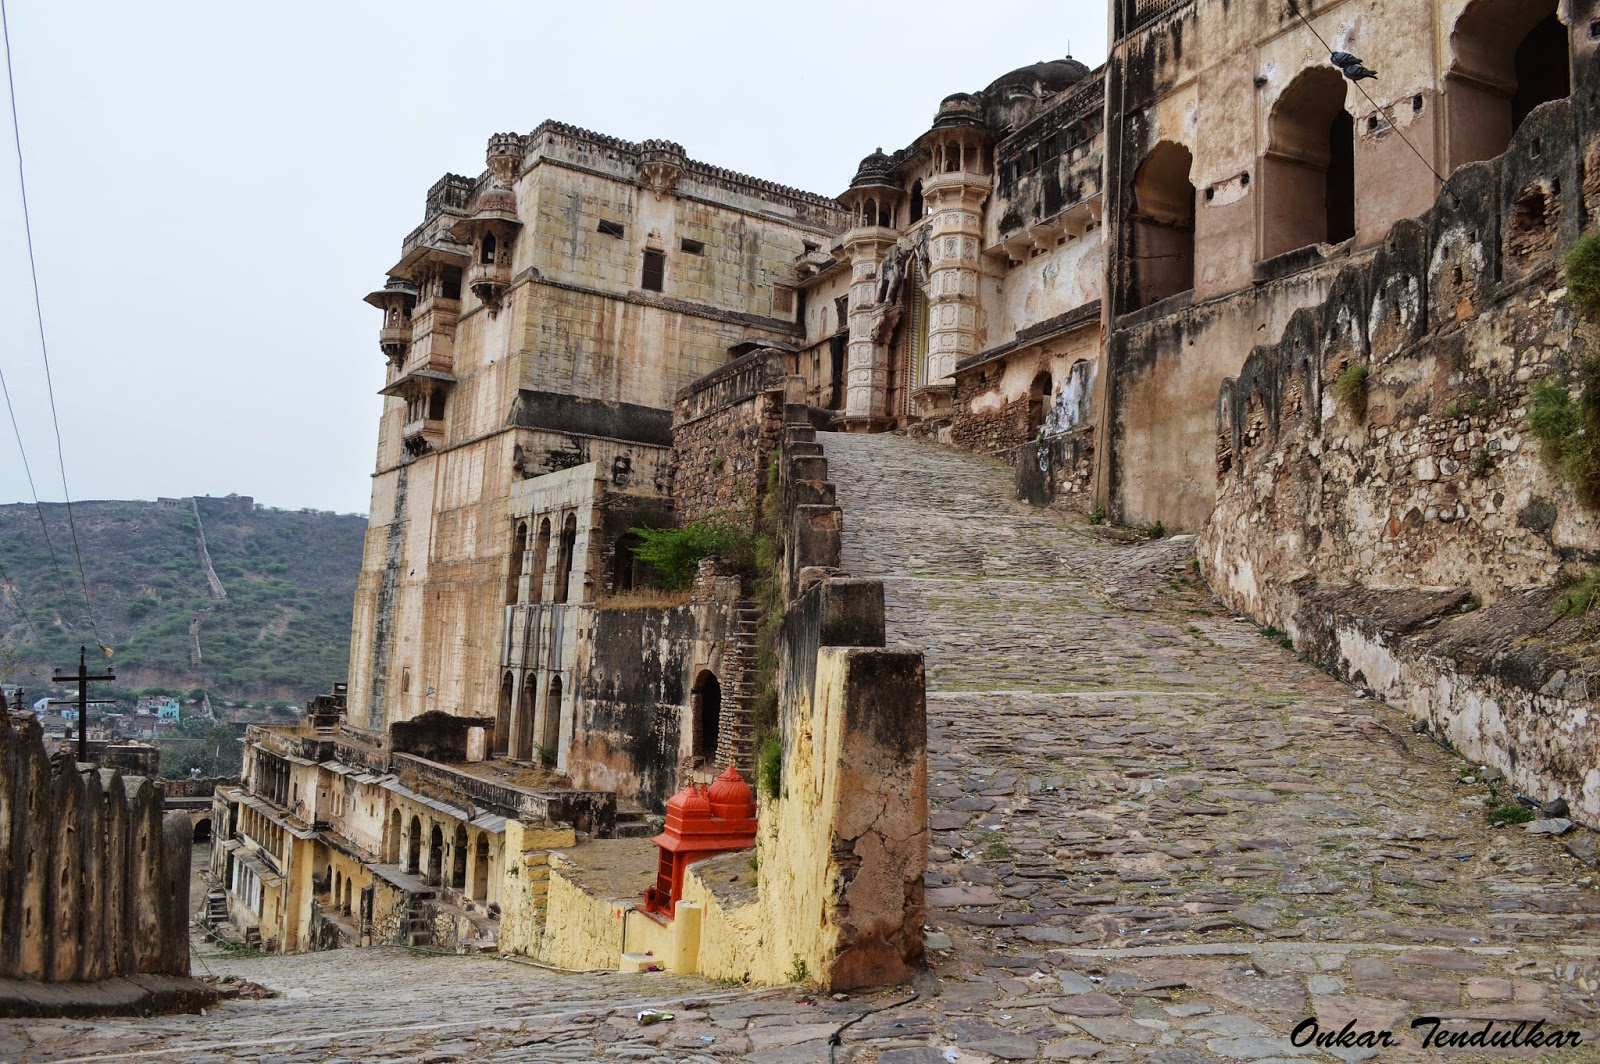 Bundi- The jewel of Hadoti region